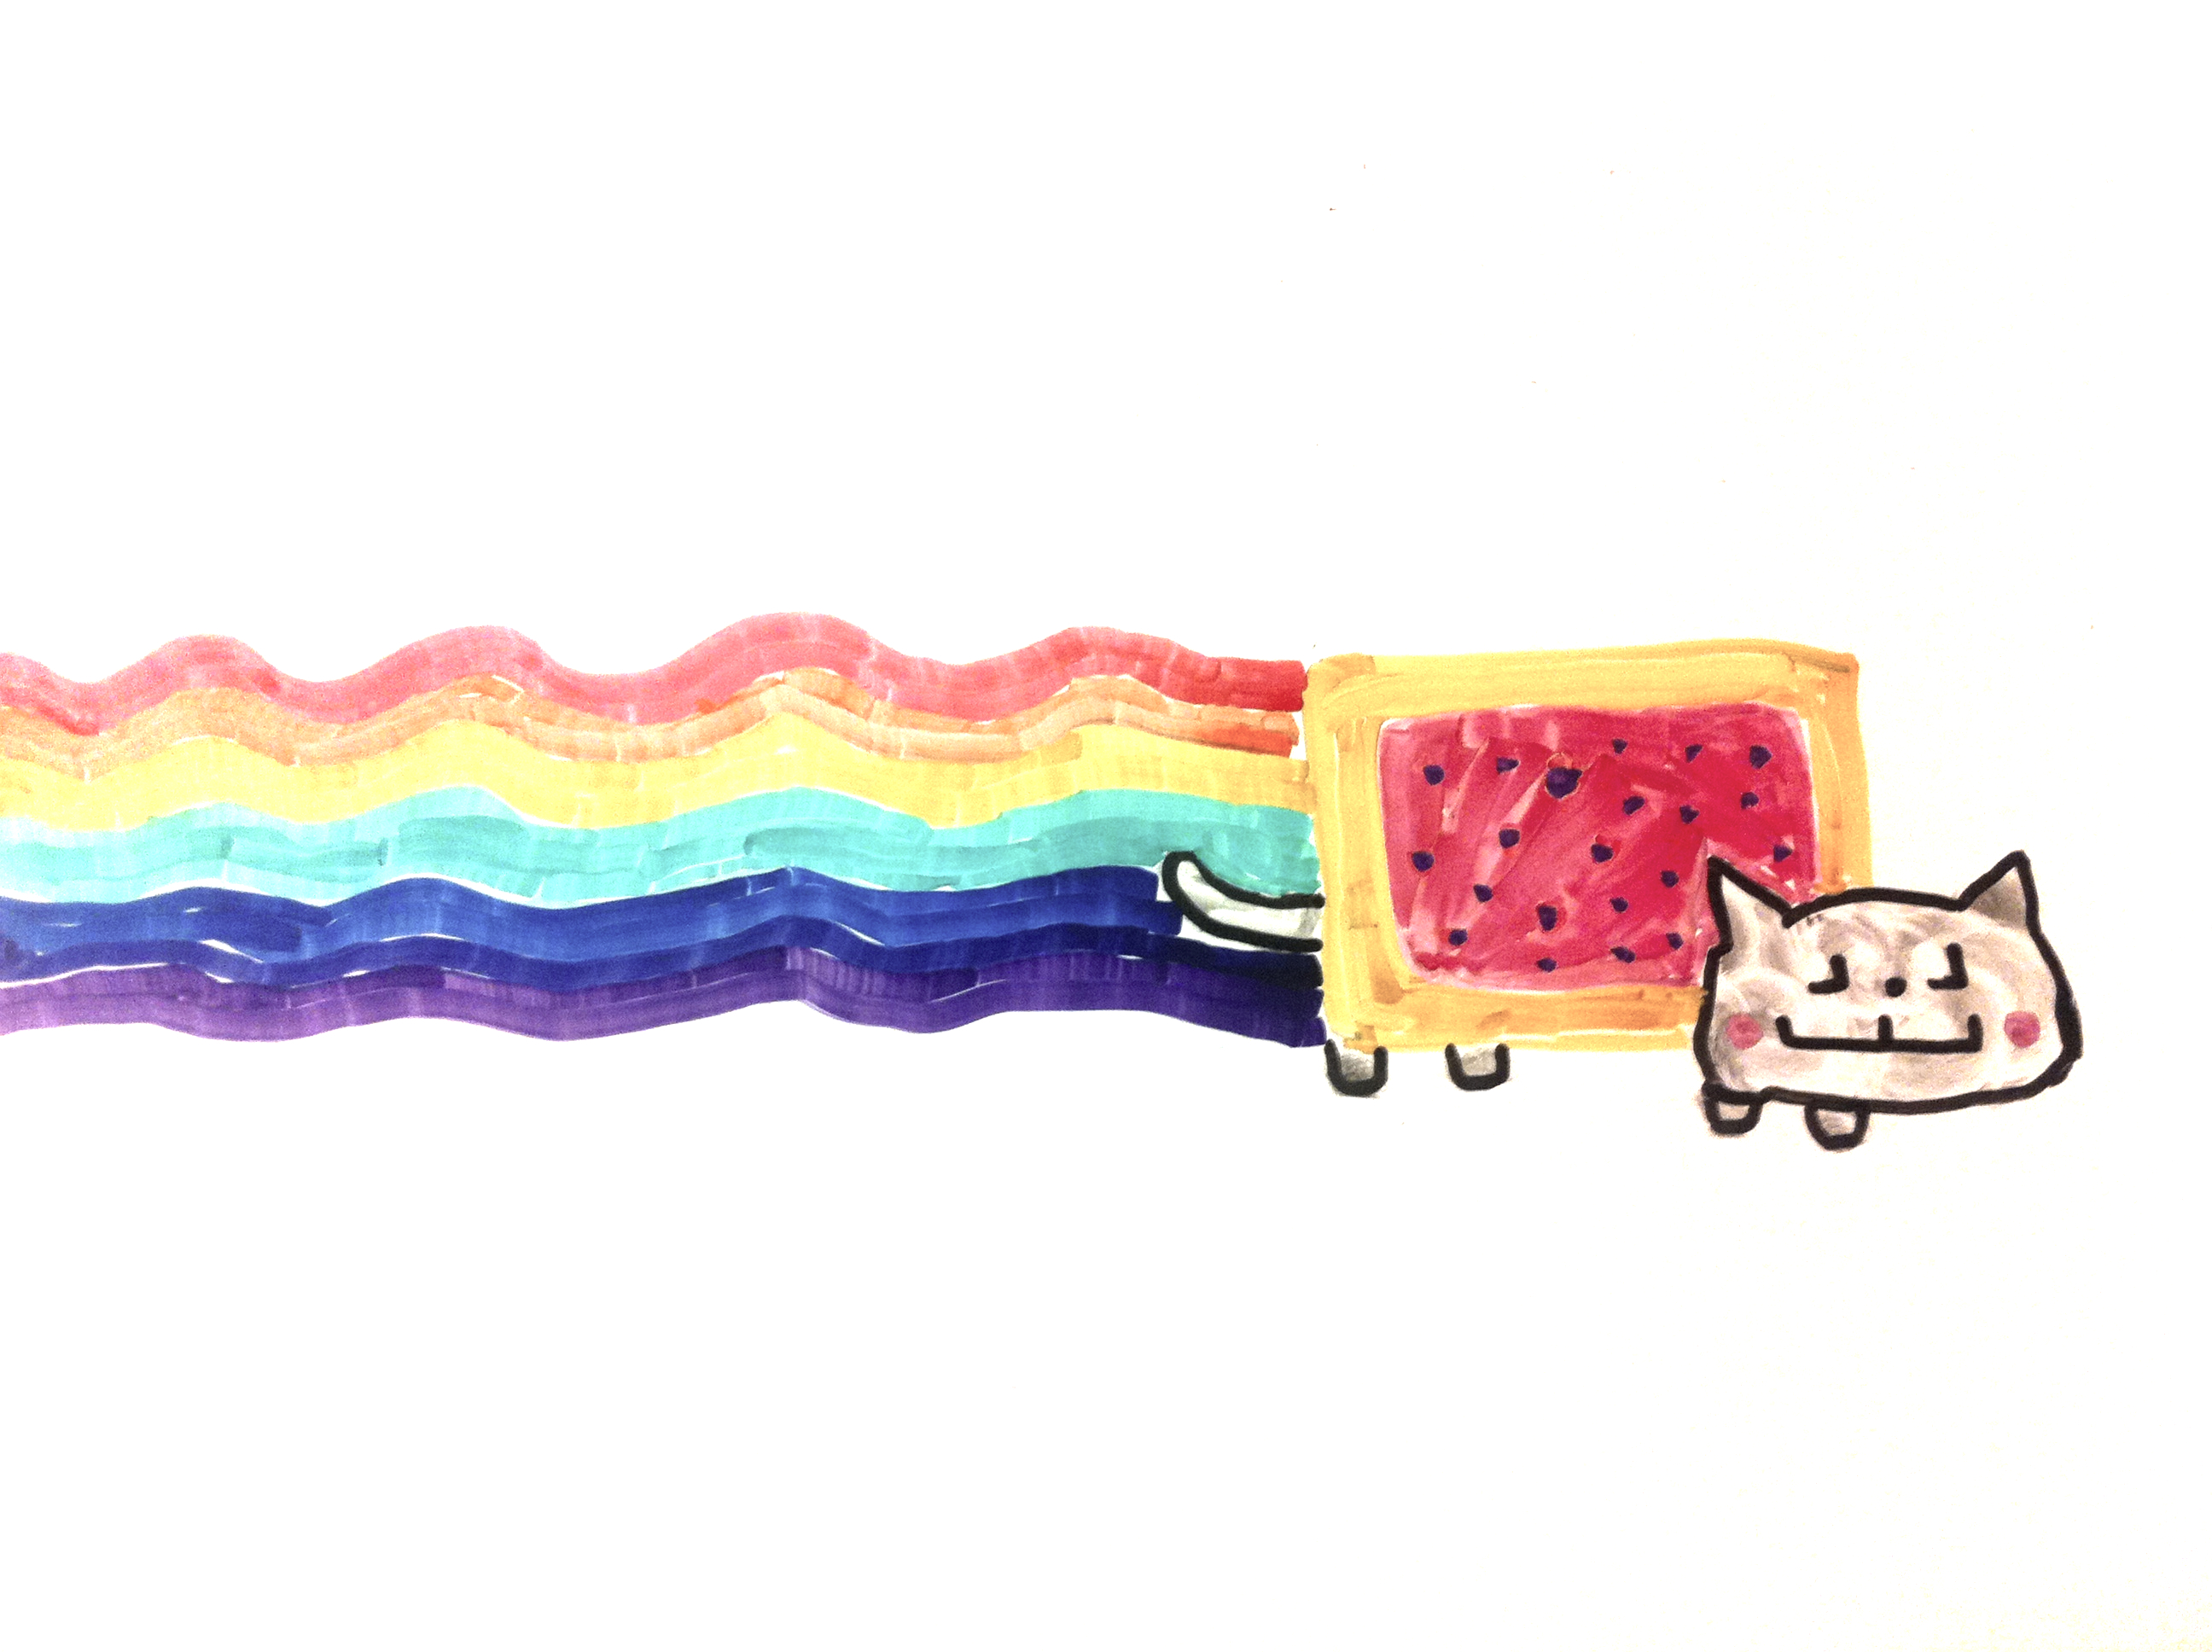 Nyan cat in whiteboard drawing style